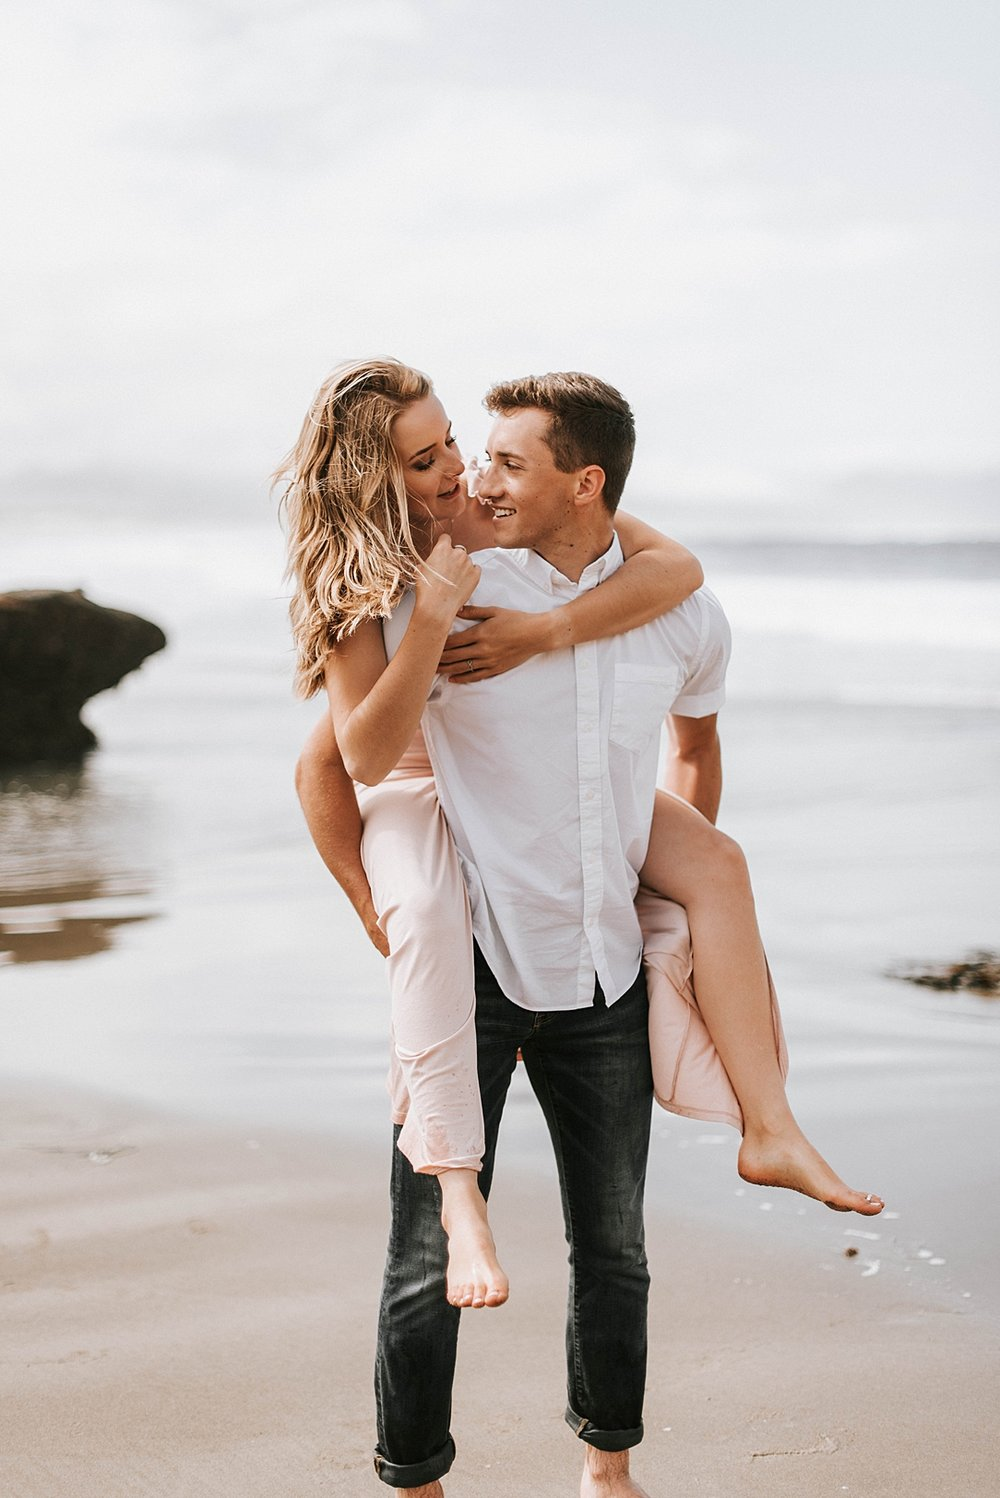 nbp sweet beach couple session_0034.jpg